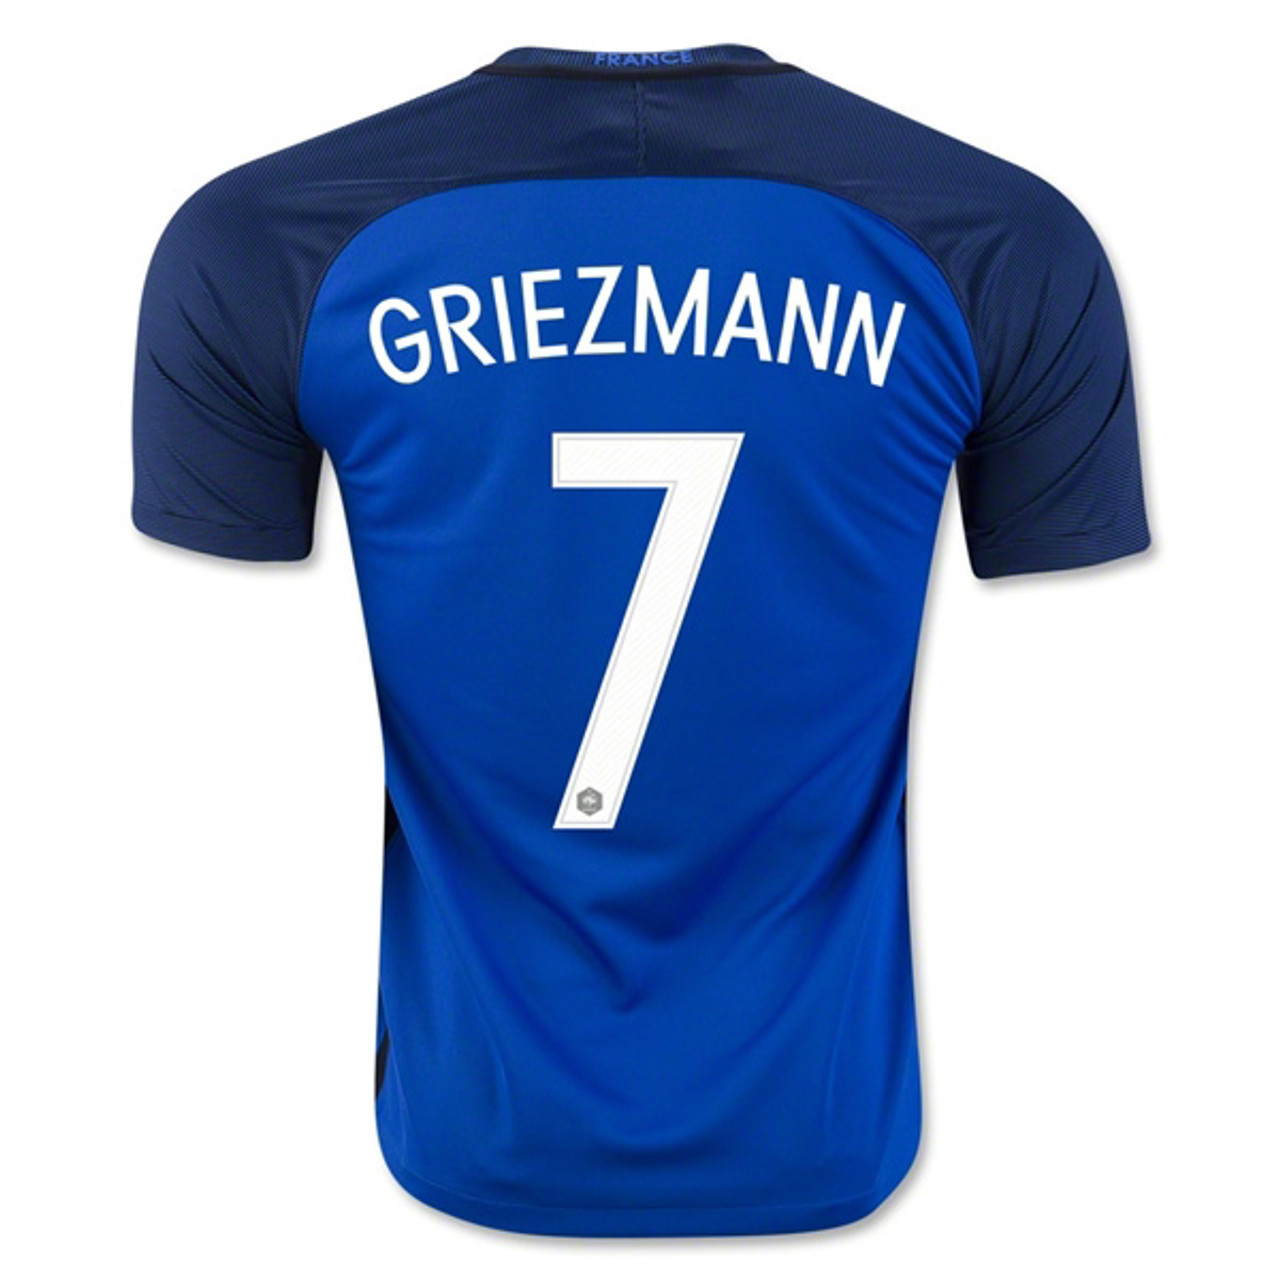 pretty nice fac1c 90363 NIKE FRANCE 2016 MENS GRIEZMANN HOME JERSEY